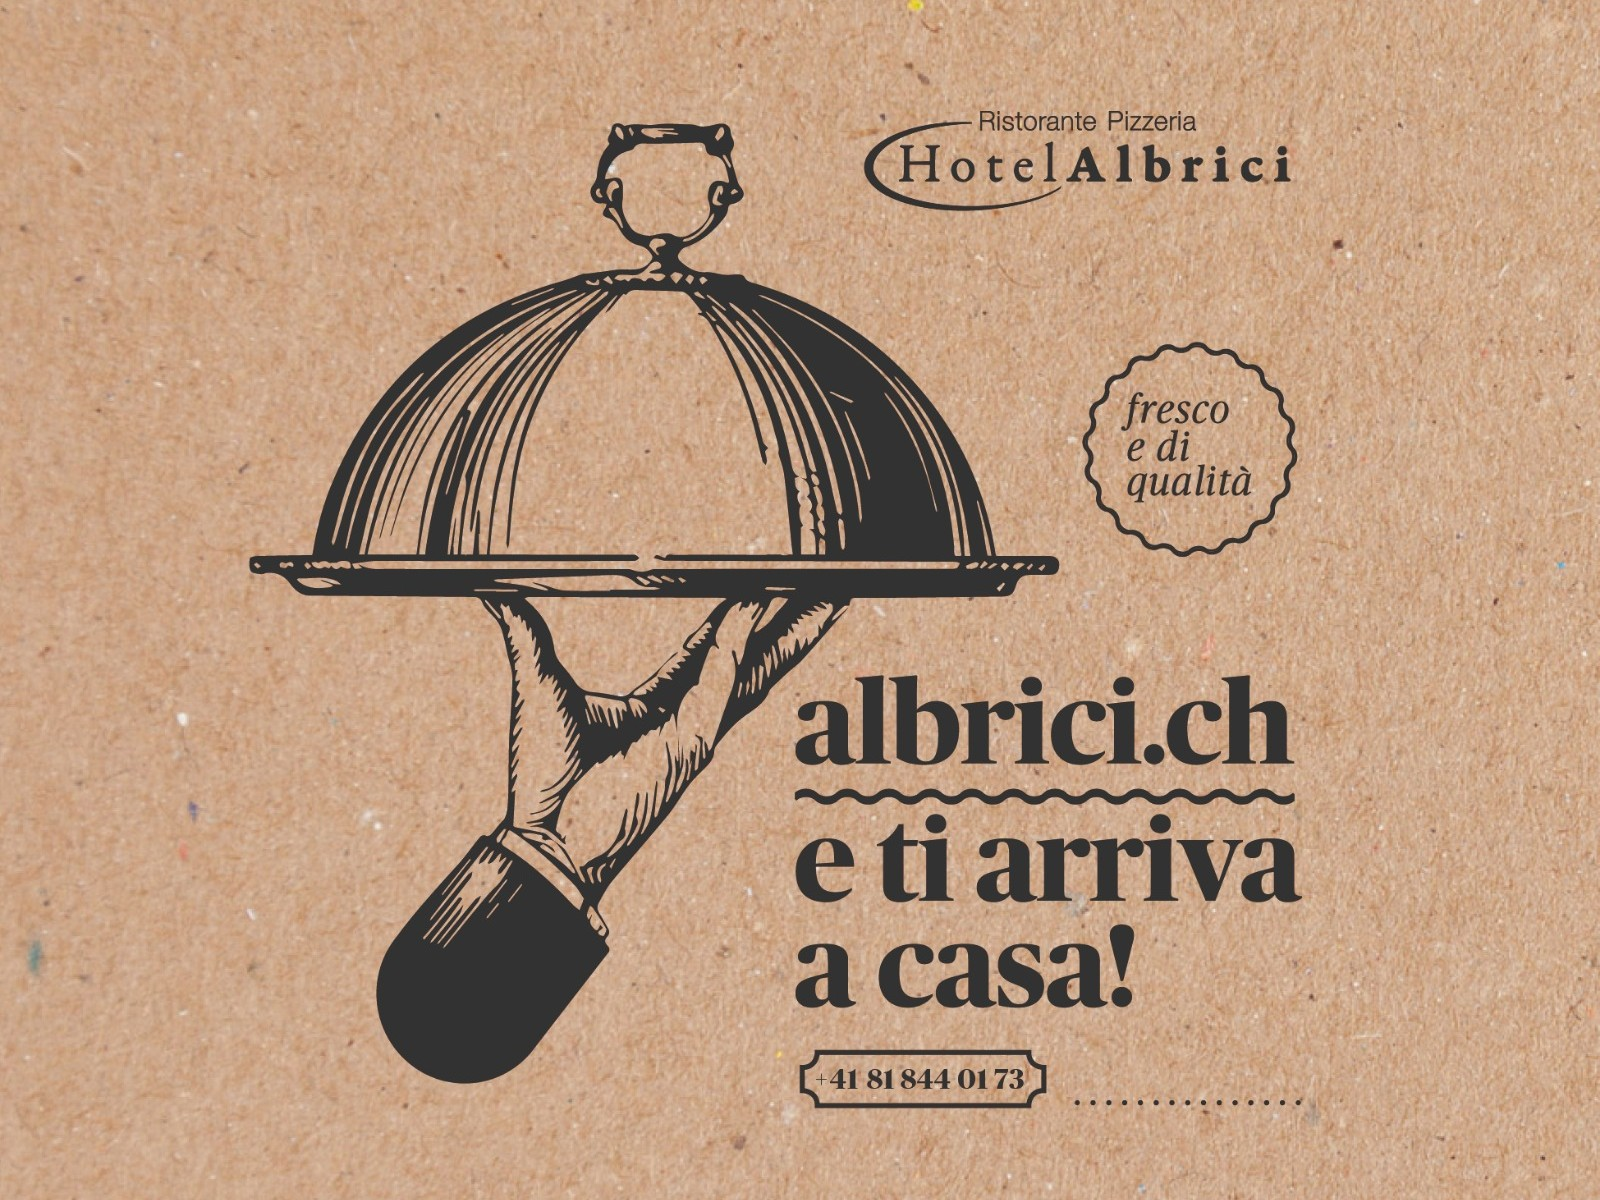 Albrici.ch - Food Delivery